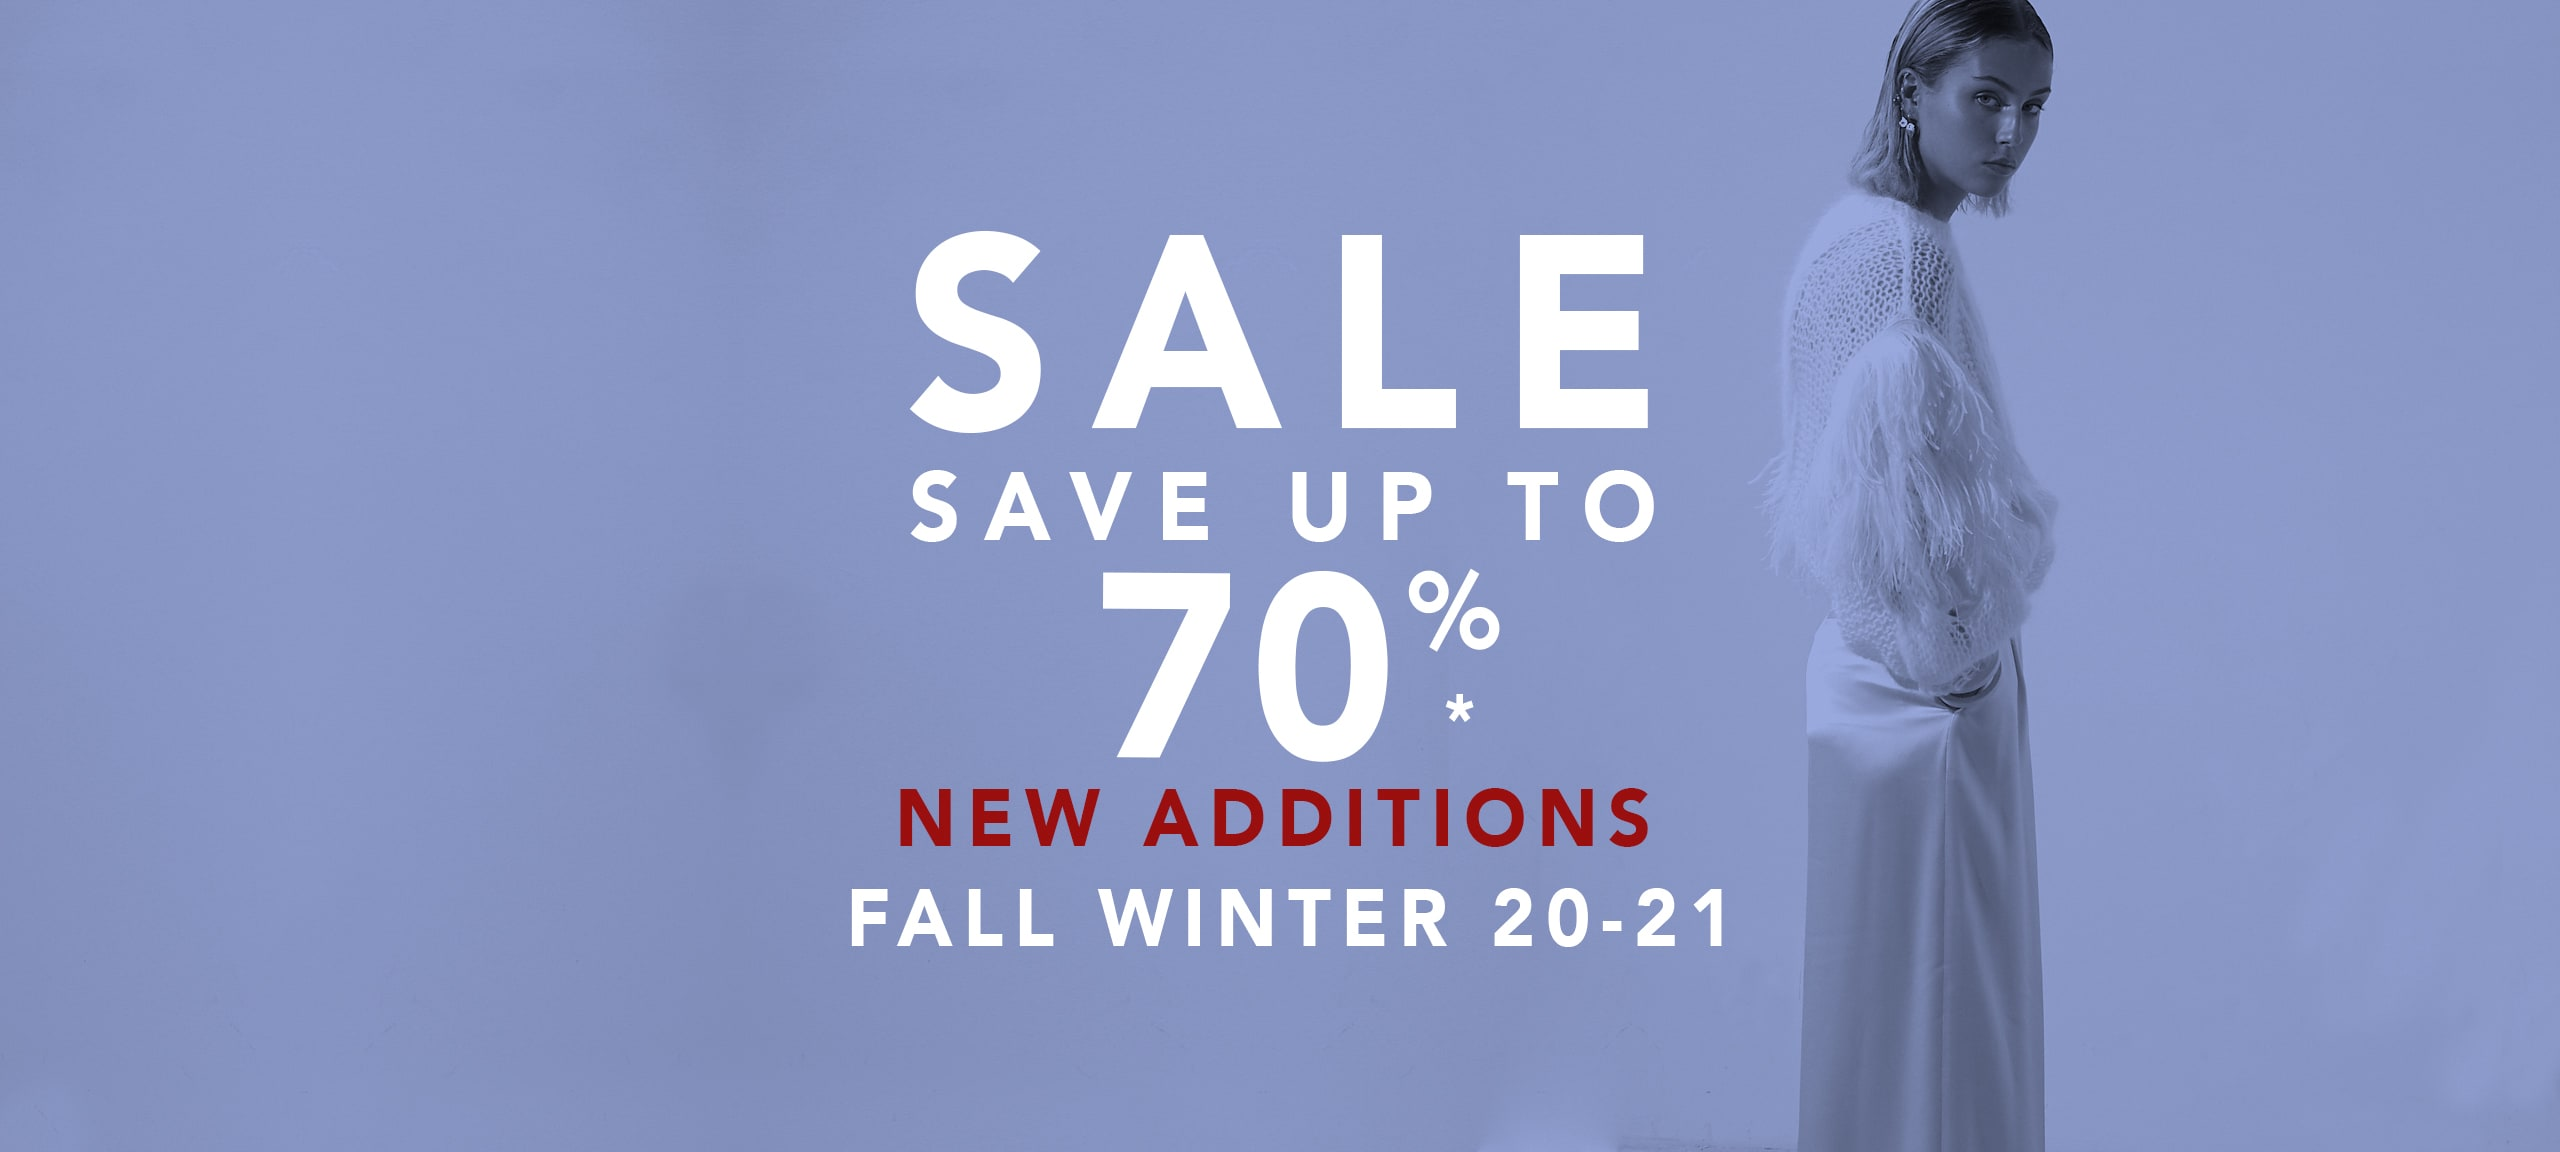 Women Fall Winter 20 Sale by italist